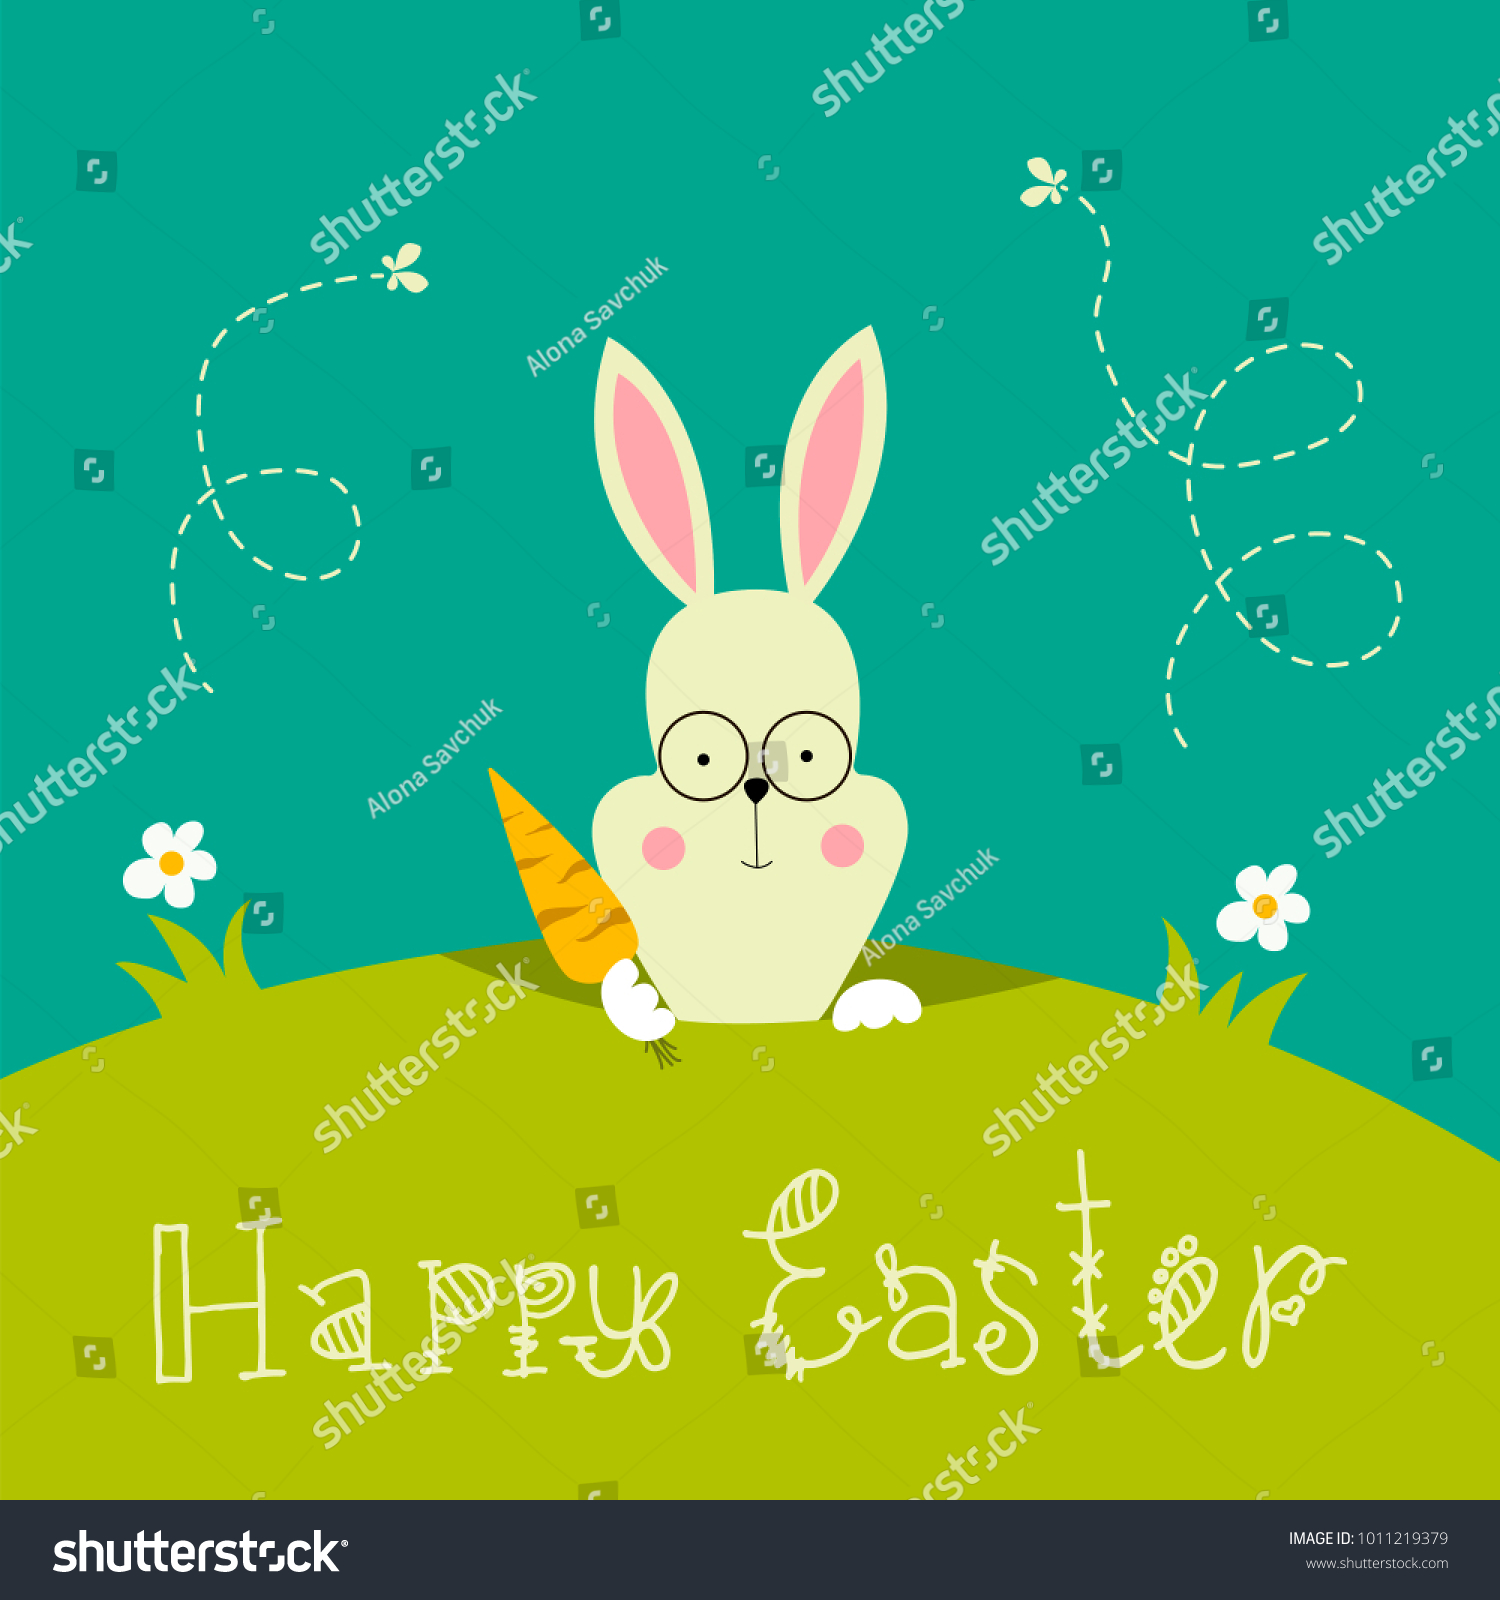 Cute Bunny Easter Rabbit Carrot Colorful Stock Vector Hd Royalty